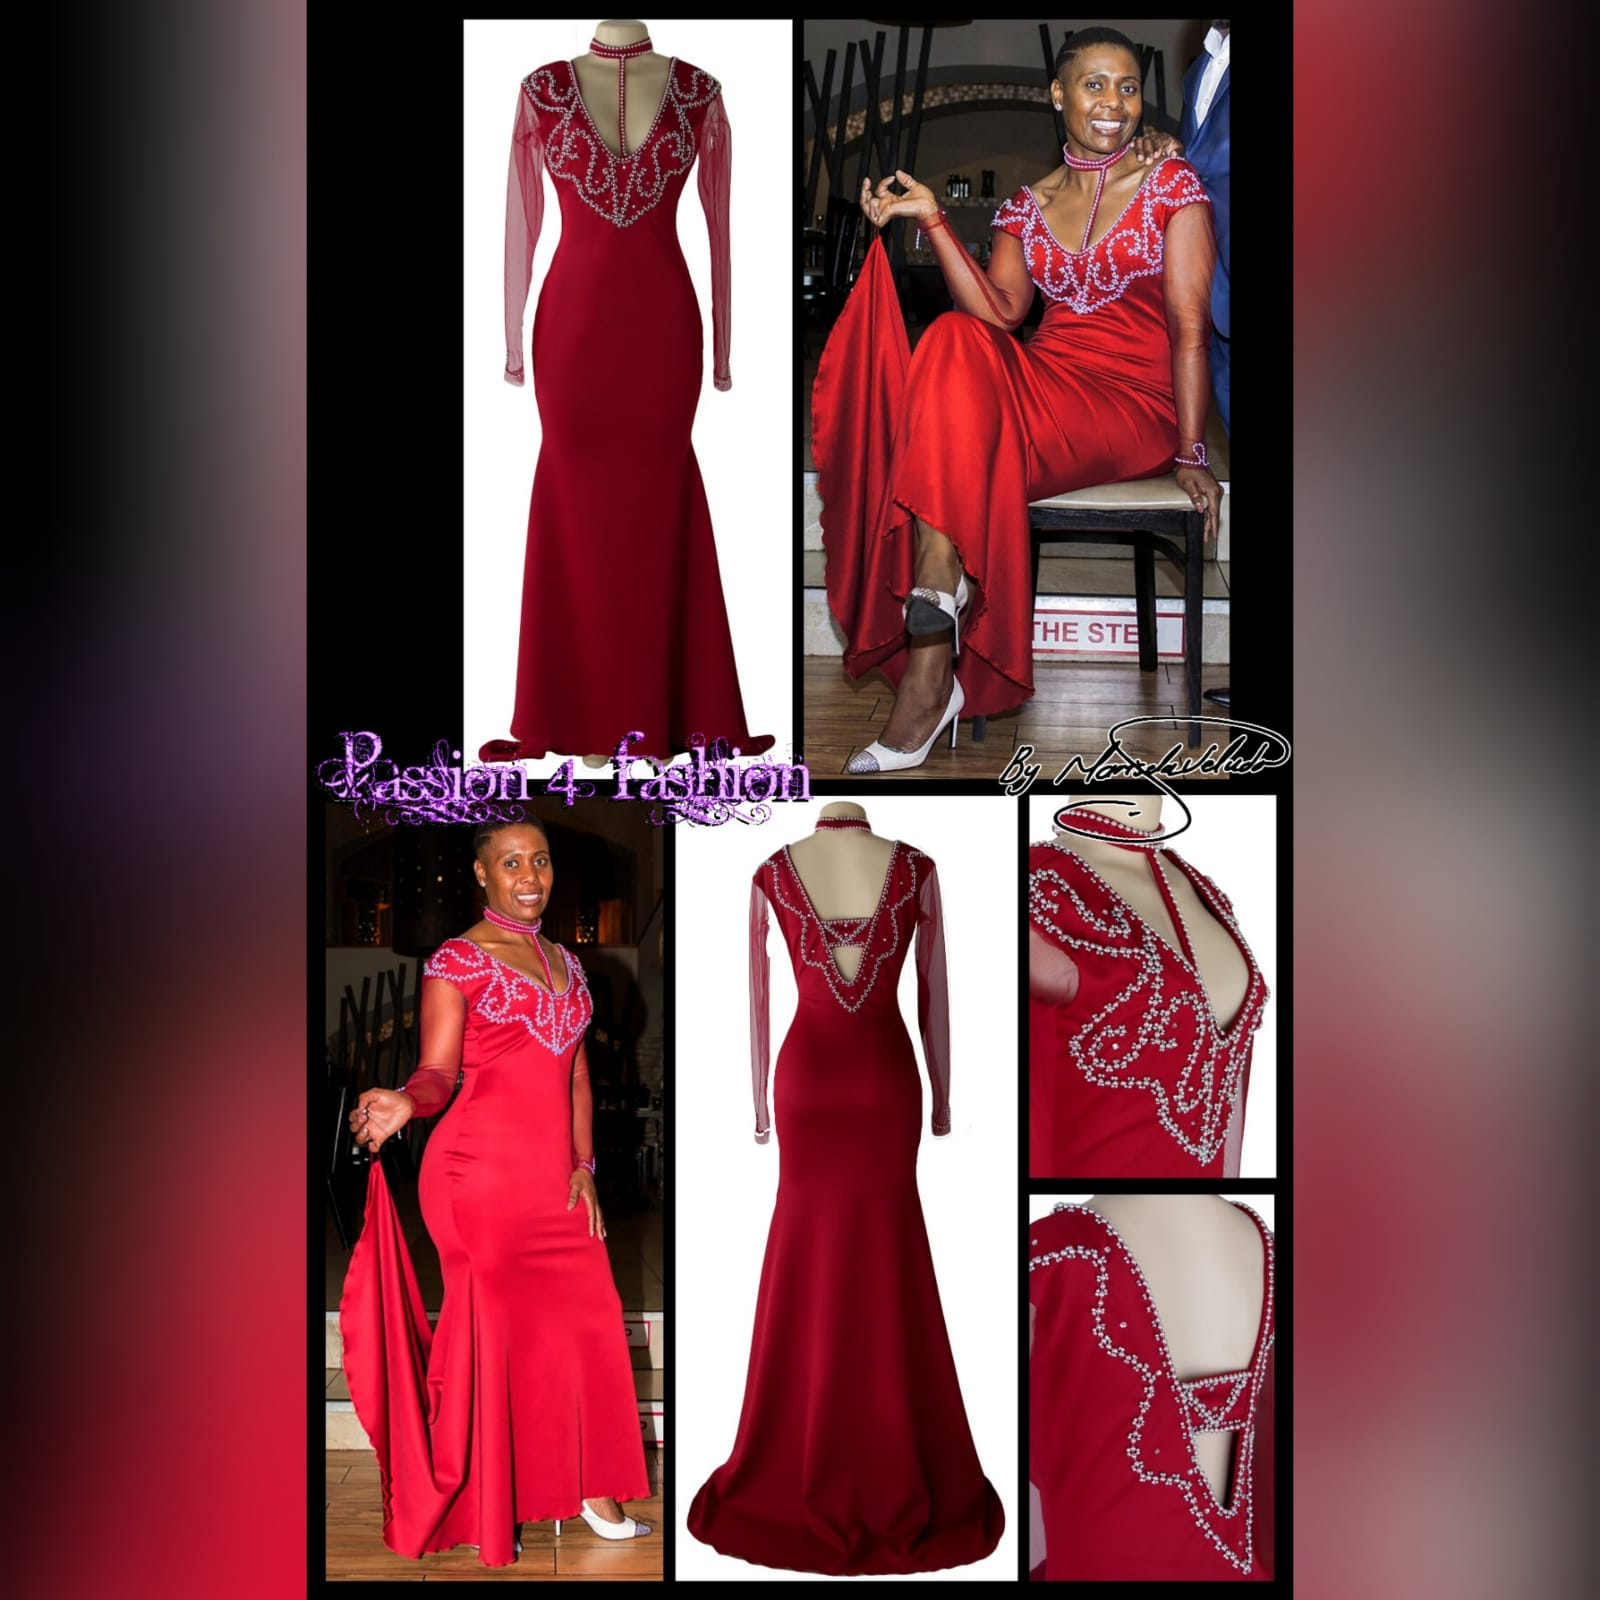 Beaded red long evening party dress 5 red long evening party dress, fitted till hip then it flares out a bit, with a train, with long sheer sleeves. Dress with a v neckline detailed in silver with an optional choker.